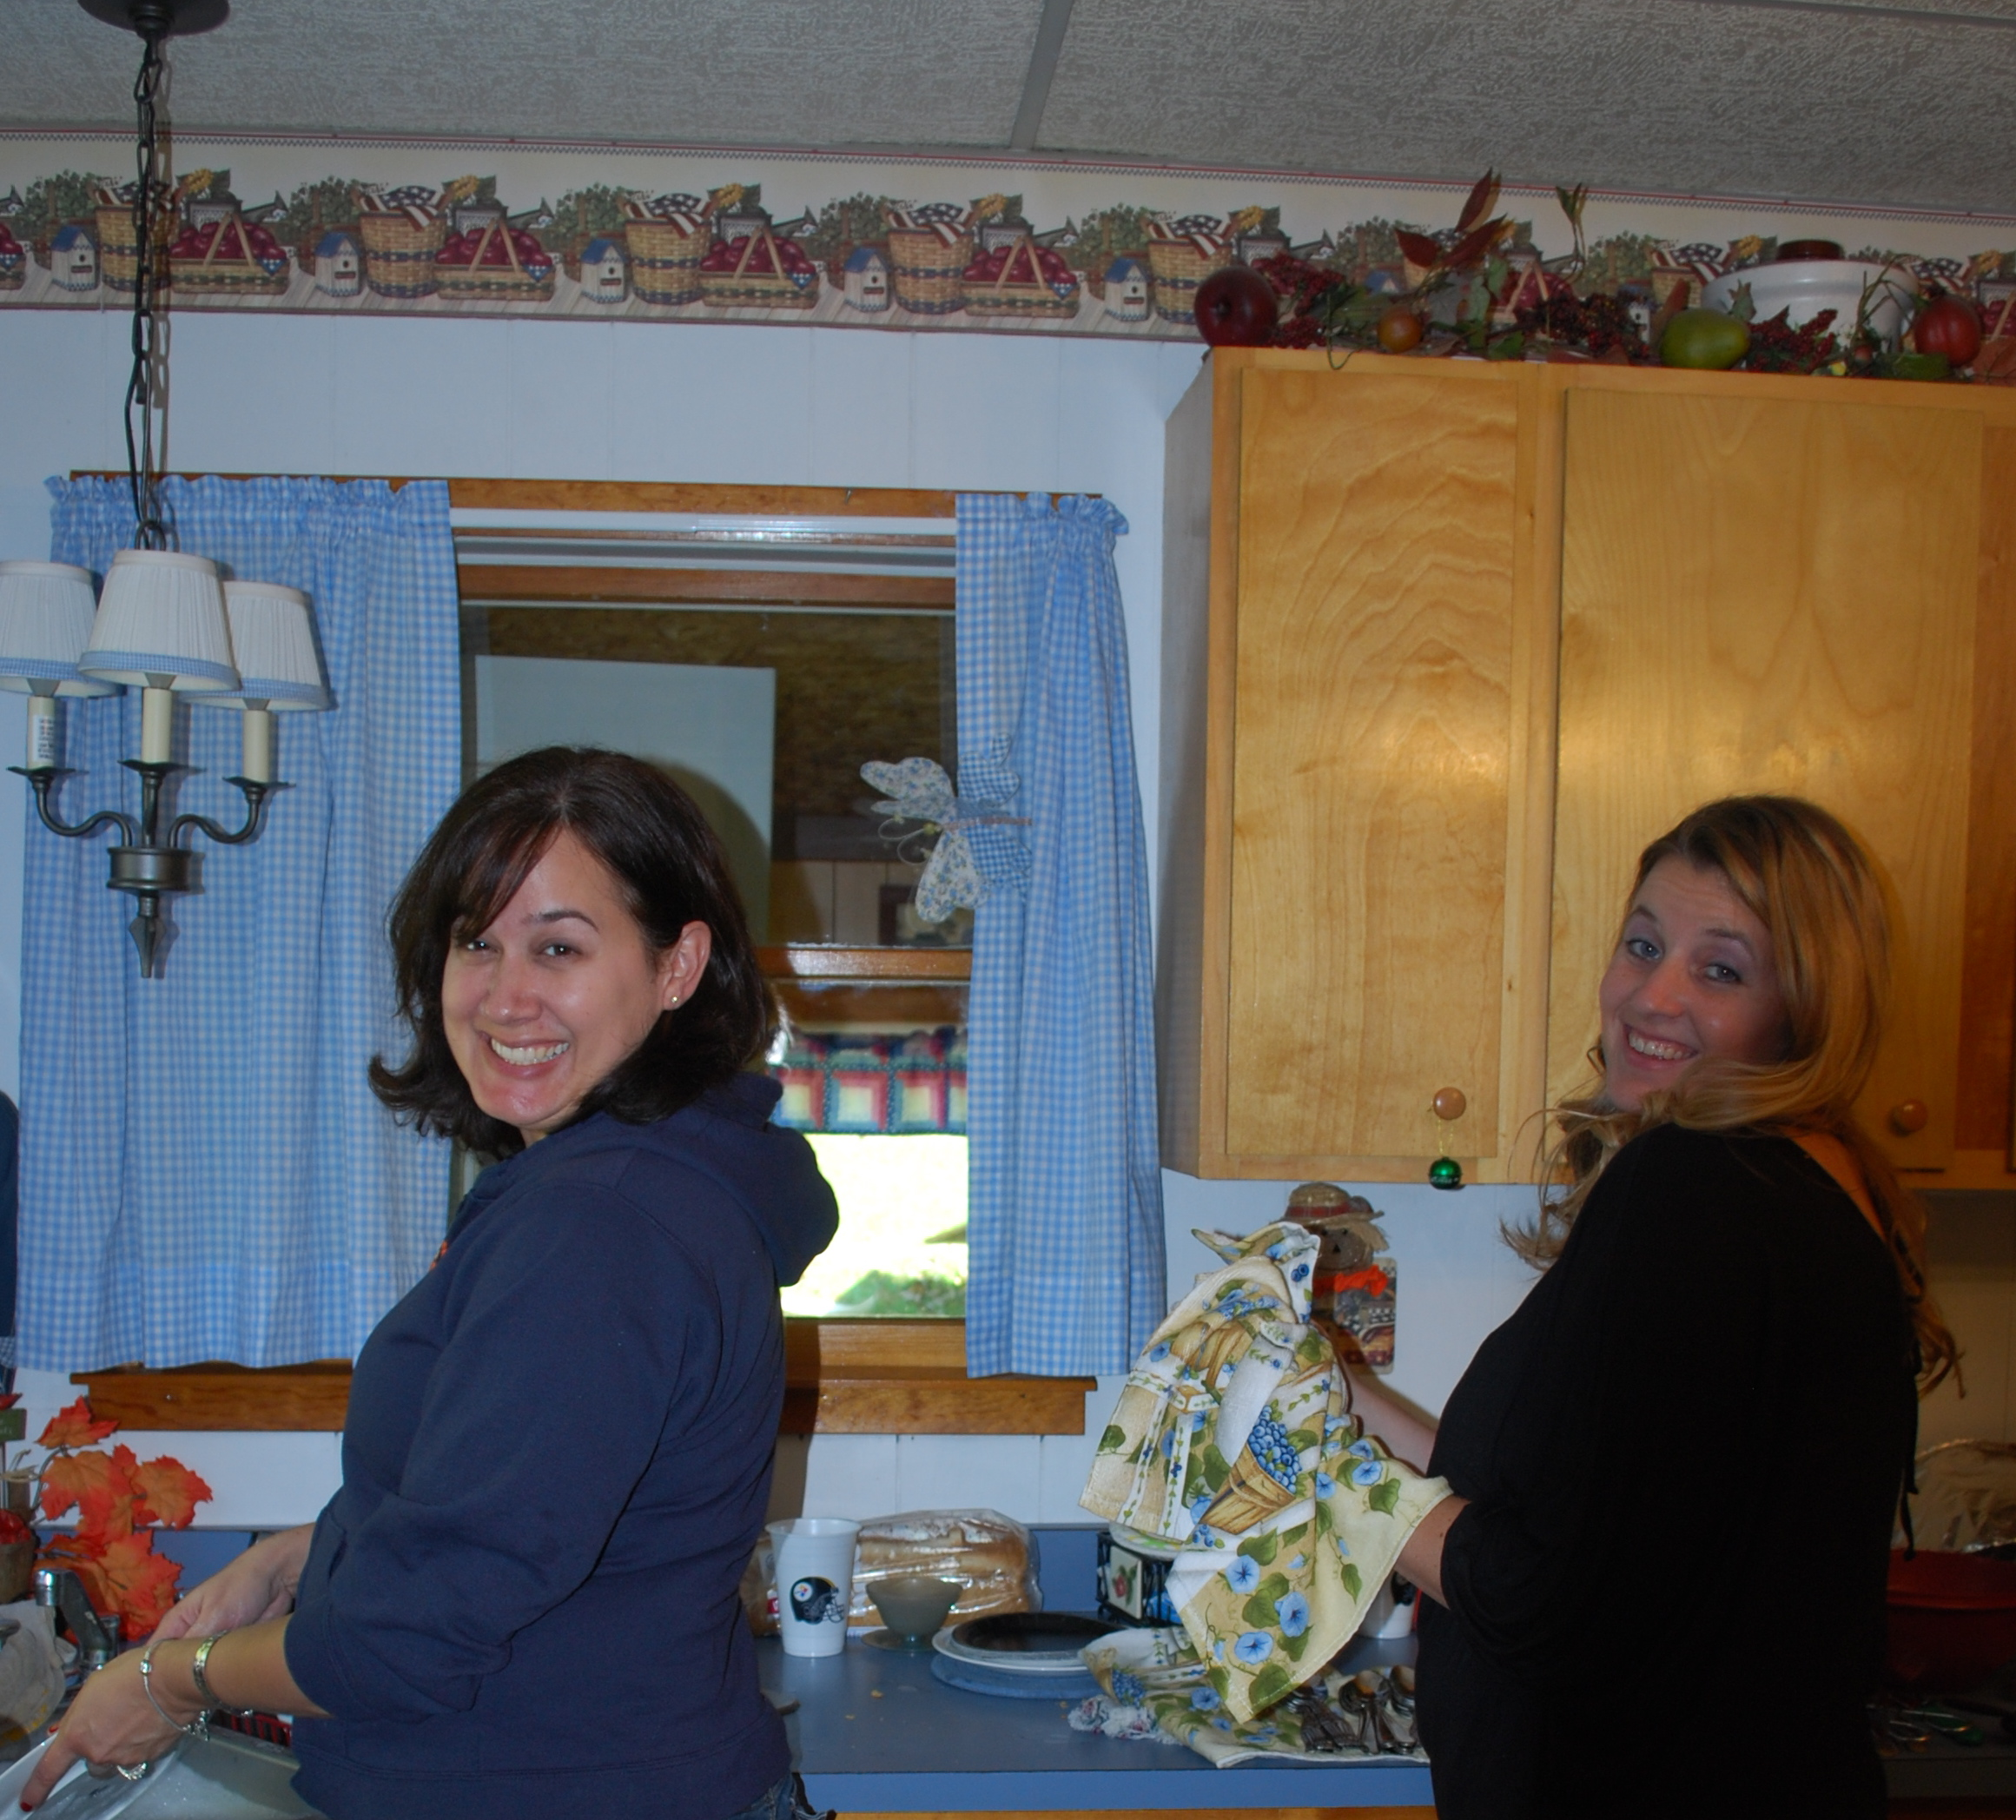 Kelli and Heather (her cousin) enjoy their vacation by doing the dishes for 18 people@